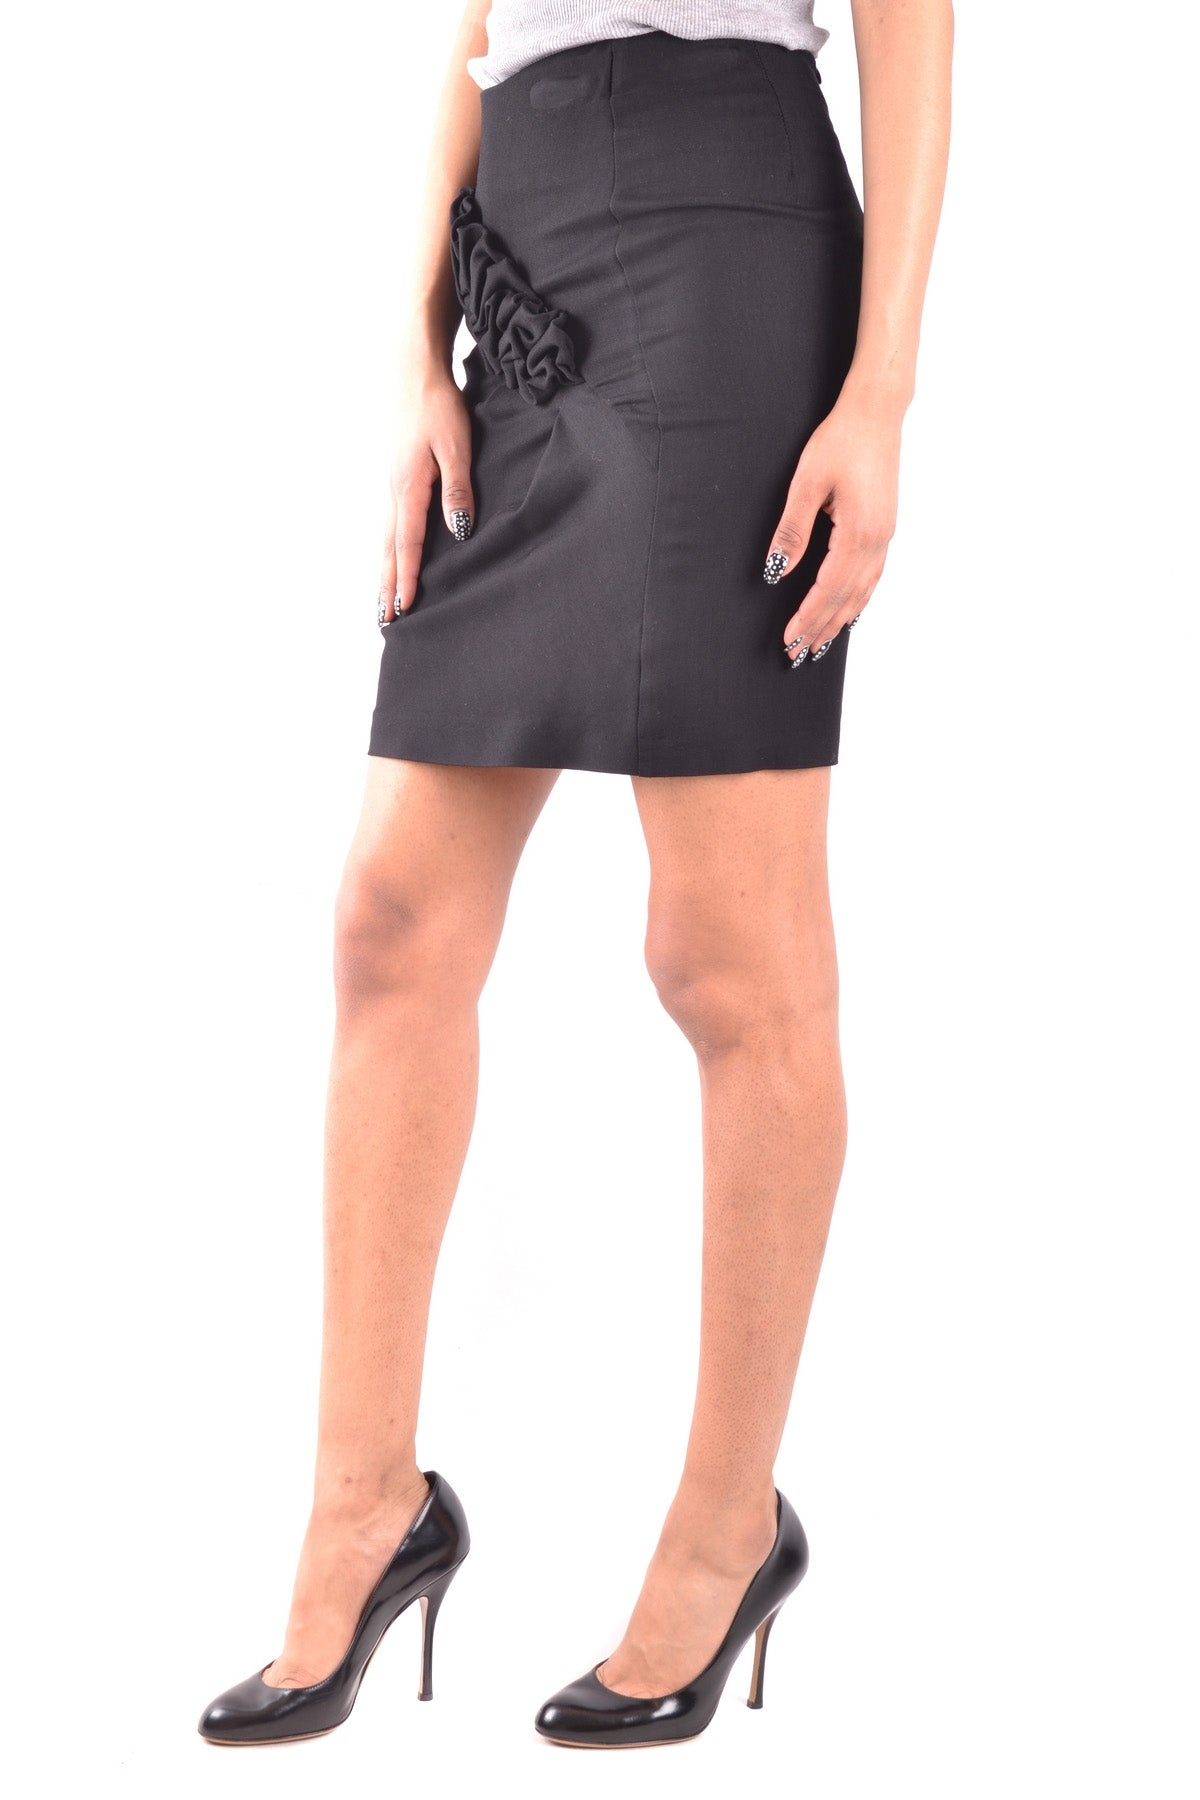 Skirt Emporio Armani-Skirts - WOMAN-Product Details Terms: New With LabelMain Color: BlackGender: WomanYear: 2017Size: ItSeason: Spring / SummerClothing Type: SkirtComposition: Viscose 100%-Keyomi-Sook